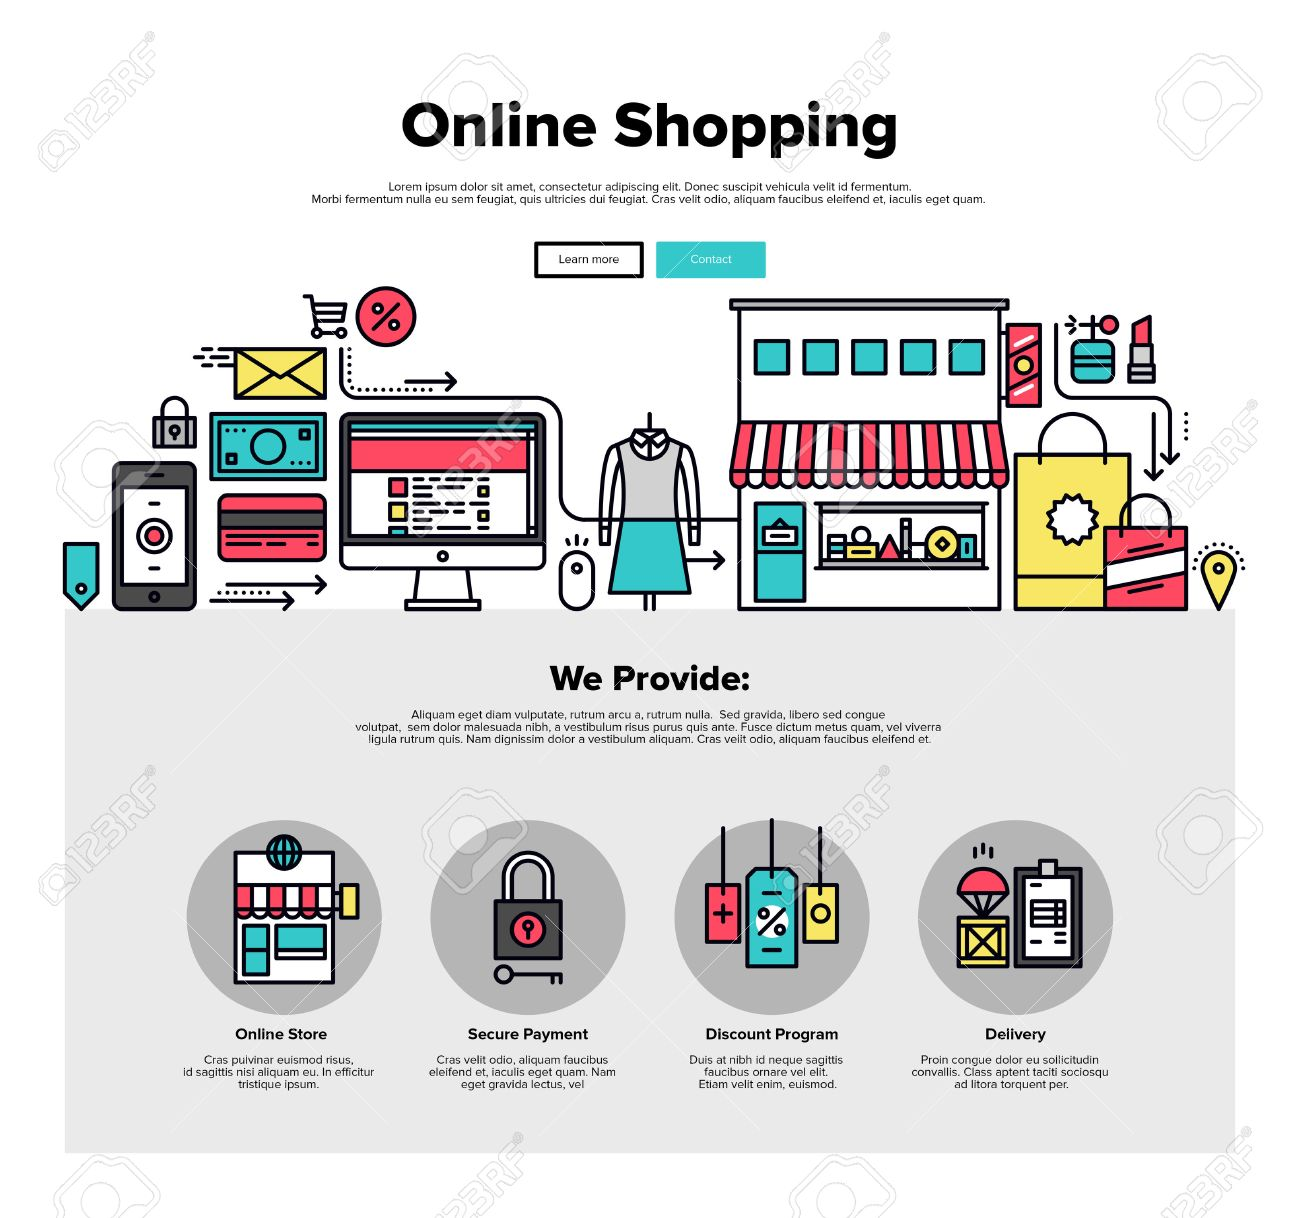 595 Online Marketplace Stock Vector Illustration And Royalty Free ...